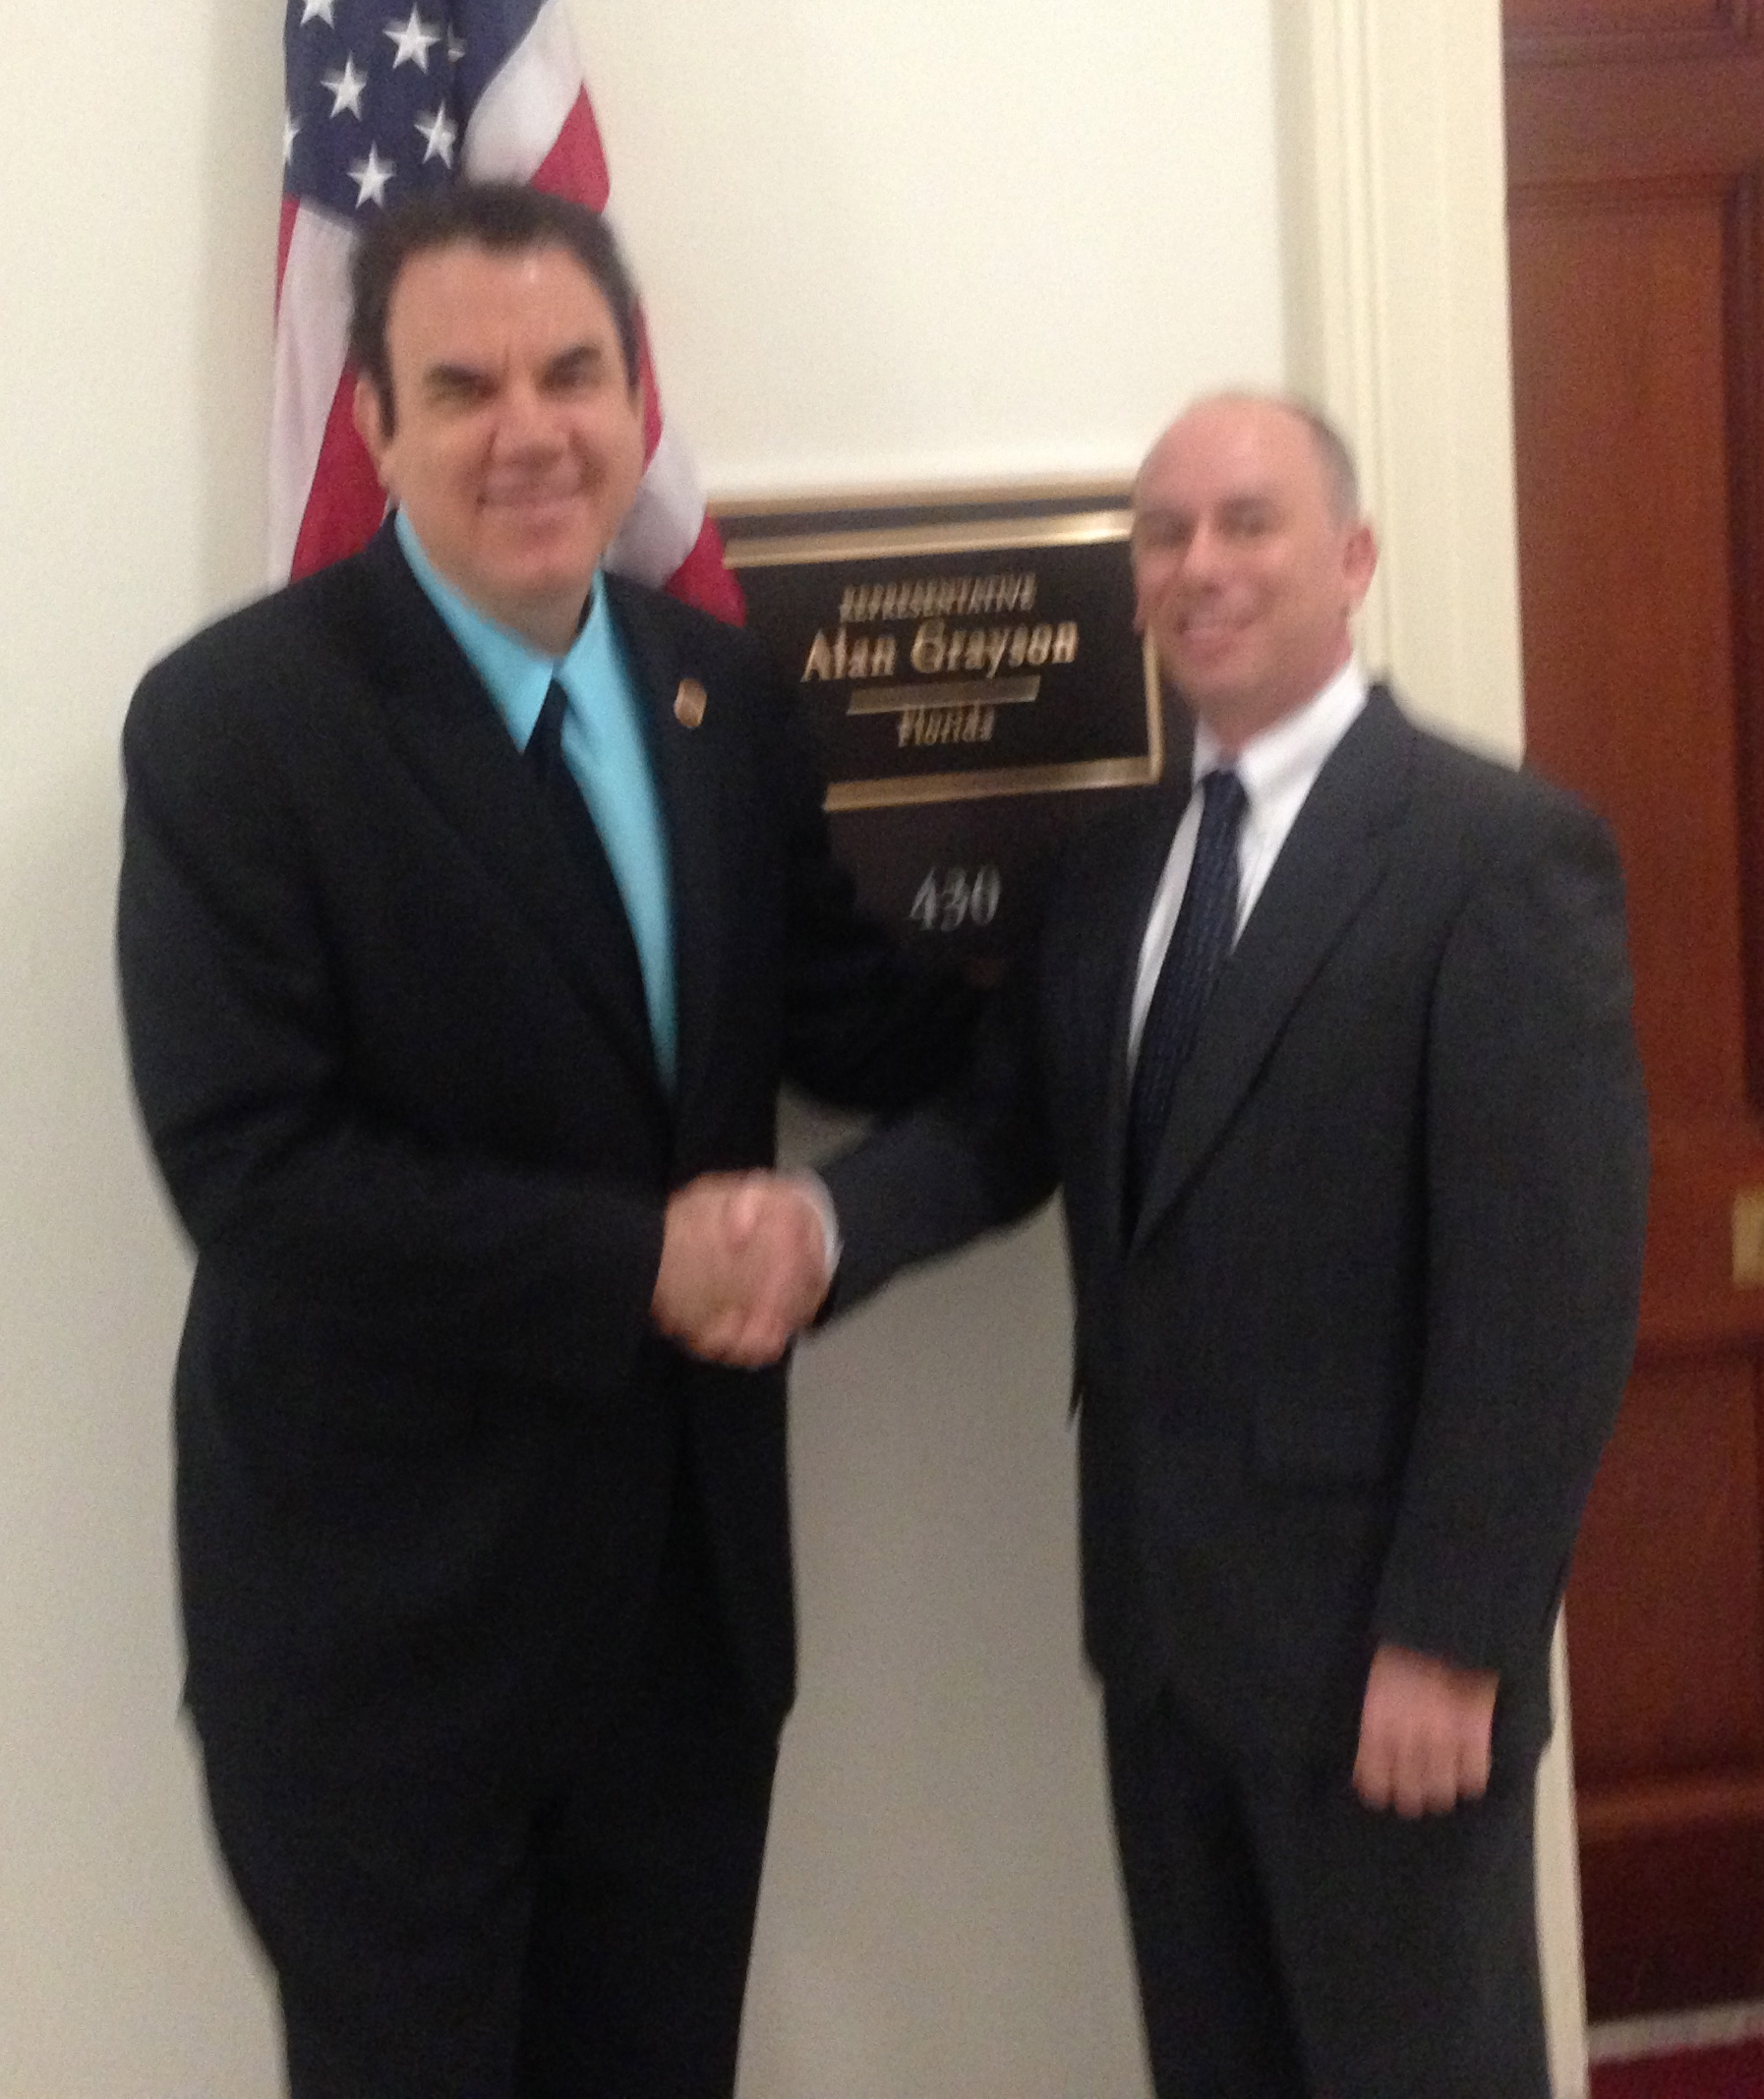 Prosthetist Brett Saunders meets with Rep. Alan Grayson as pictured on the website of Saunders Prosthetics and Orthotics Group in the Villages of Lady Lake